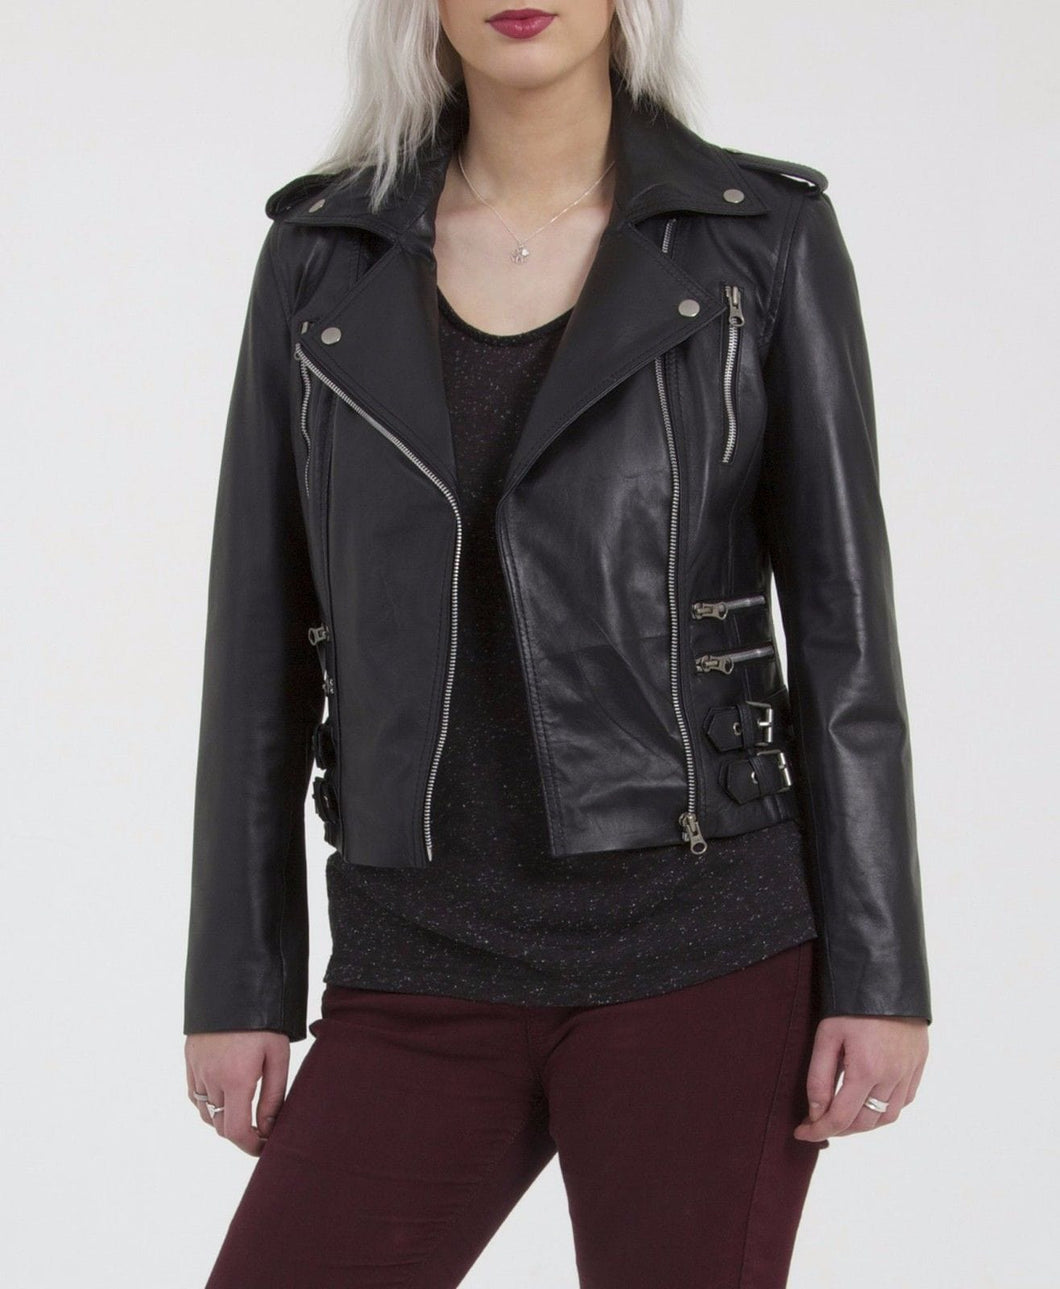 leather404 Clothing, Shoes & Accessories:women's Clothing:Coats & Jackets s Women's Black Genuine Lambskin Leather Jacket Motorcycle Slim Fit Biker Coat